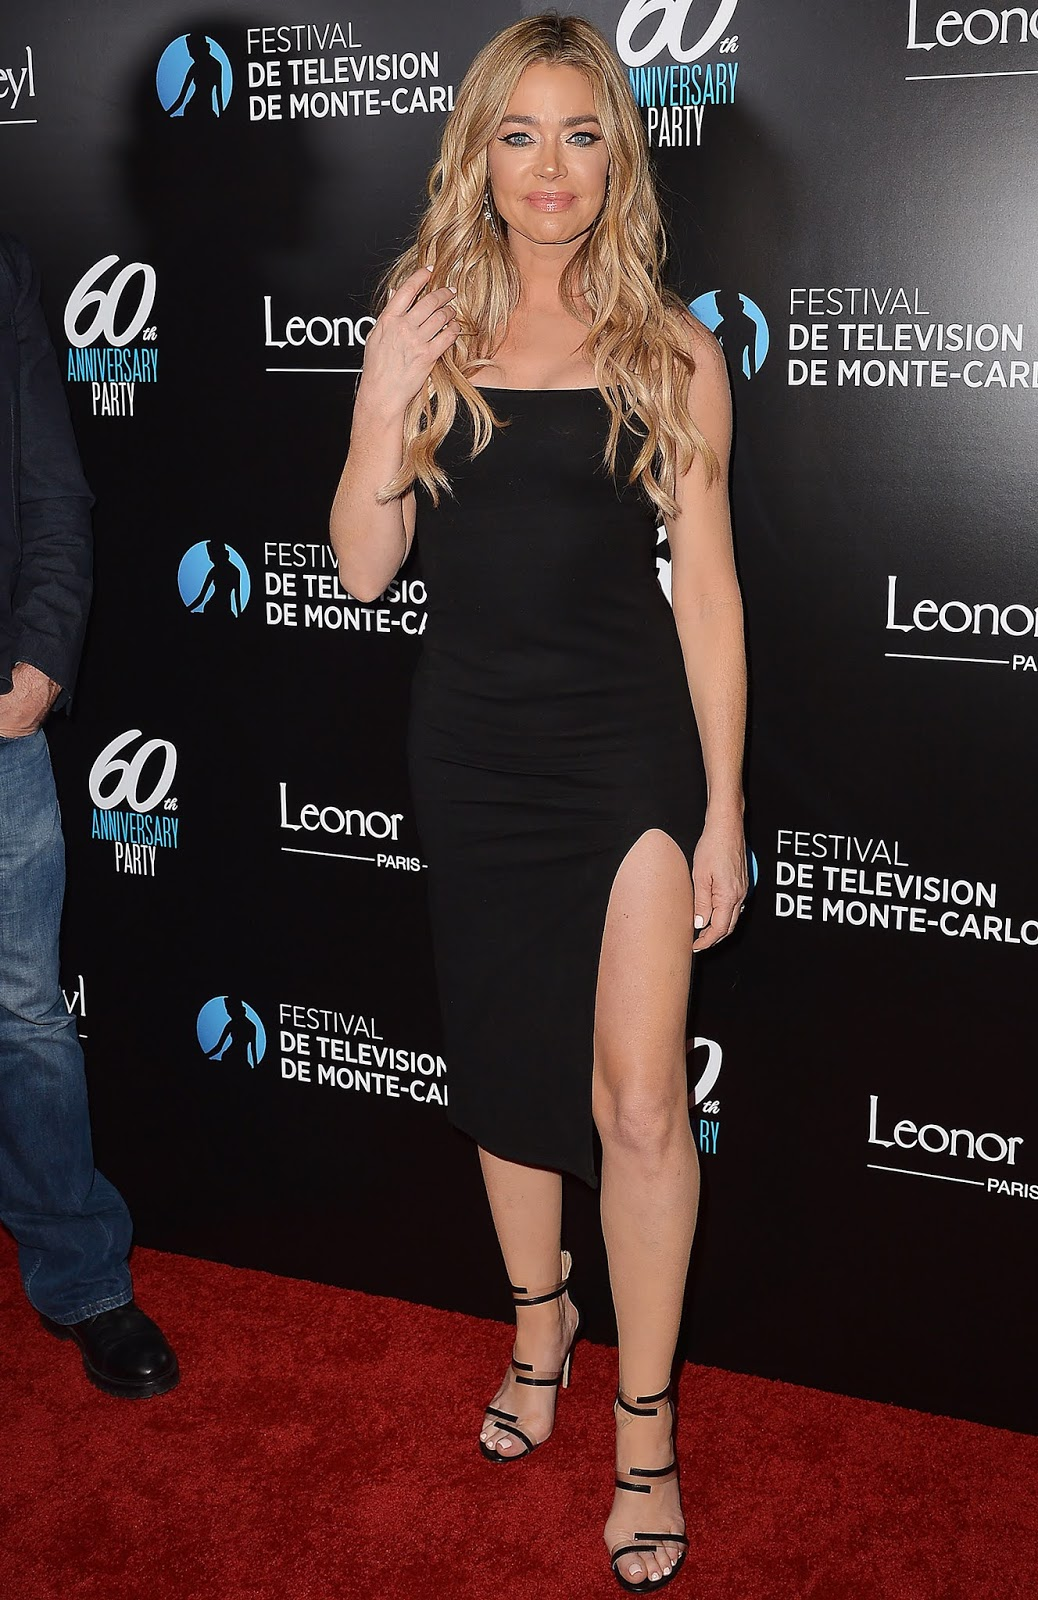 Denise Richards - Monte-Carlo Television Festival Party in LA - Wed Feb 05 2020